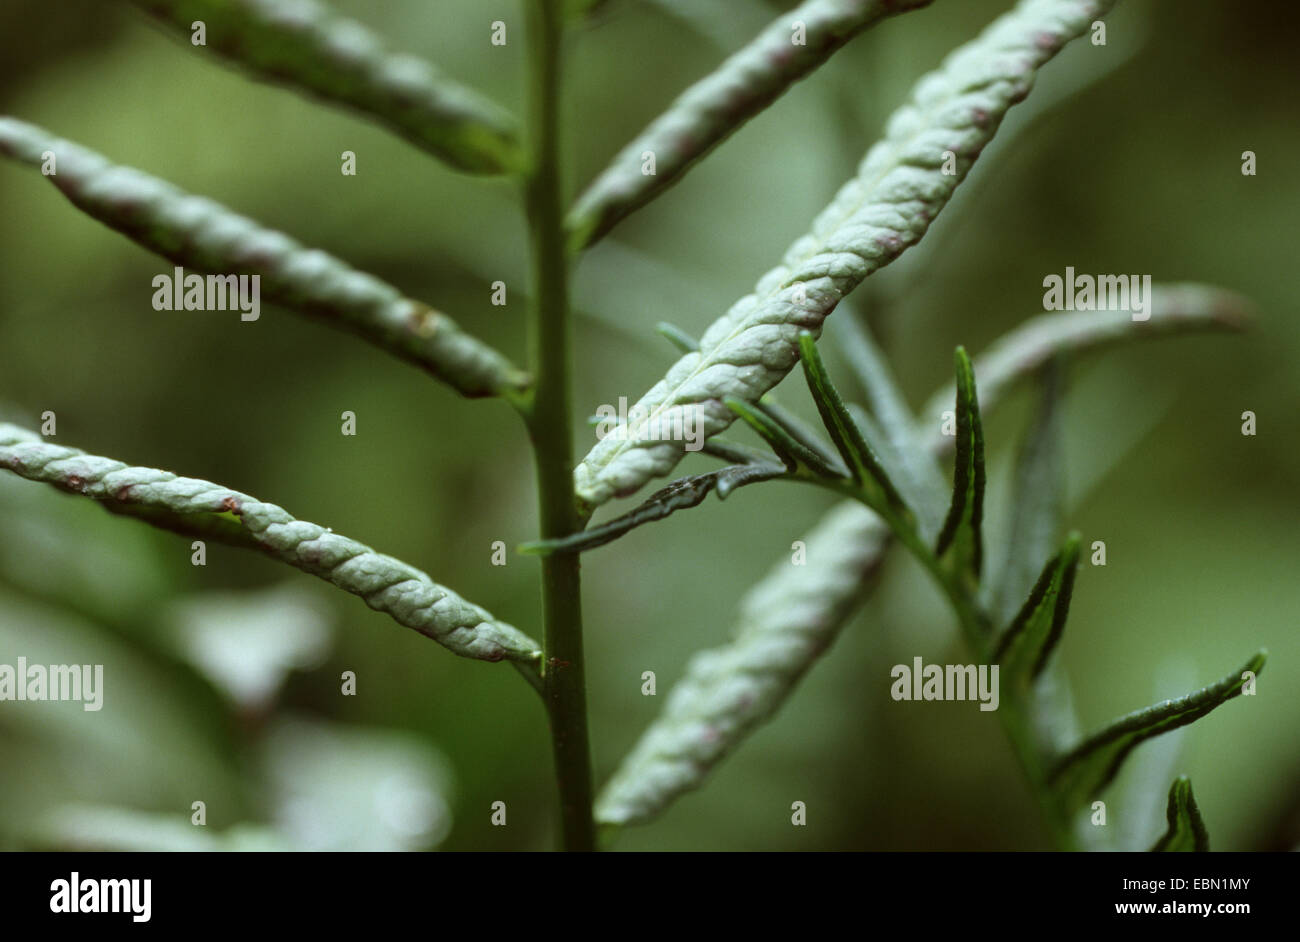 African Water Fern (Bolbitis heudelotii), detail of the frond - Stock Image